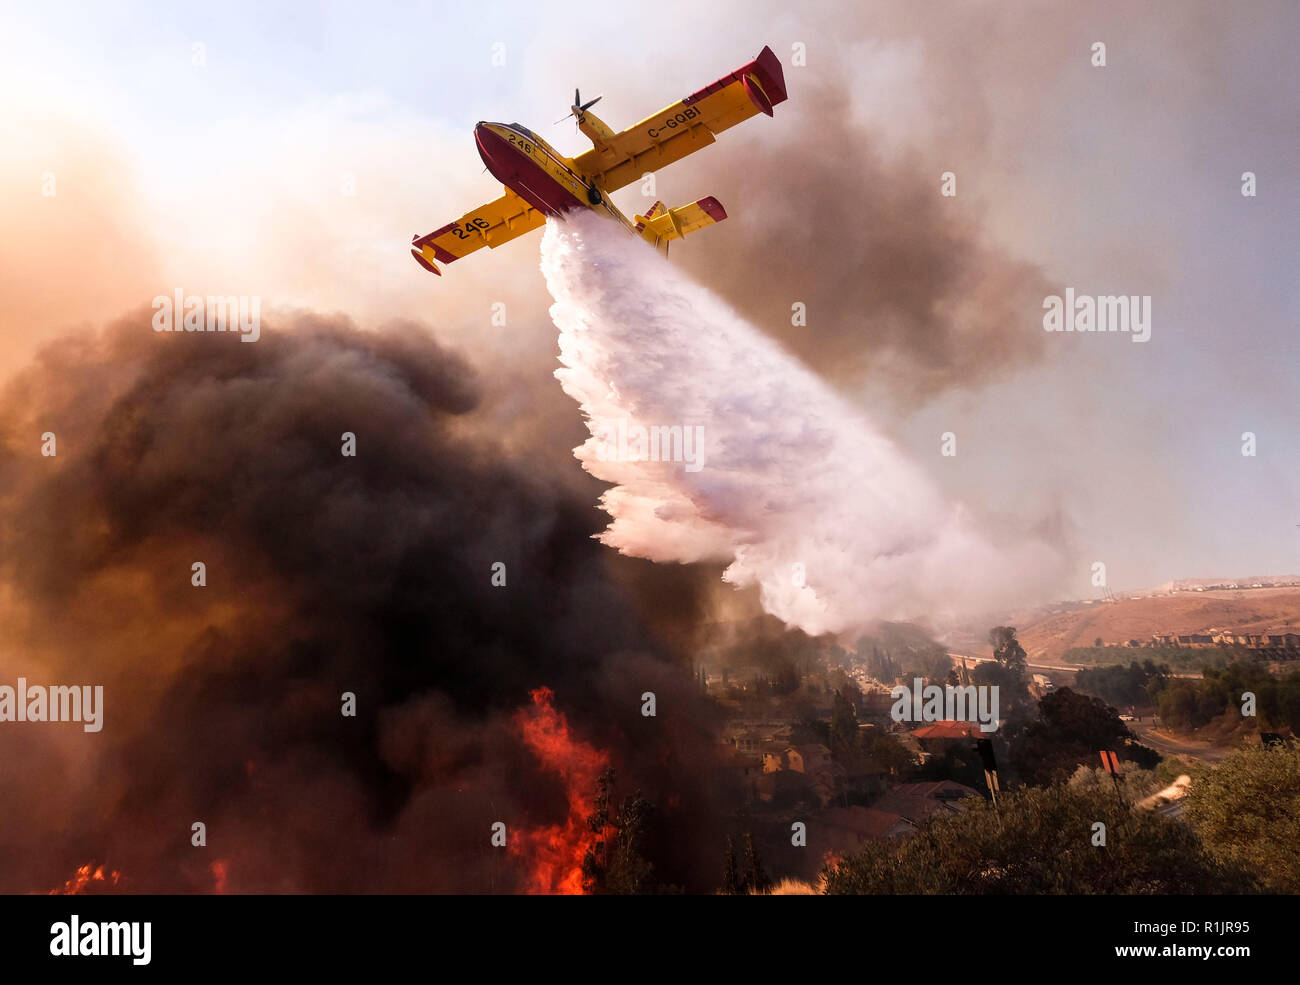 Simi Valley, California, USA. 12th Nov 2018. A small plane makes a drop on the wildfire near a freeway in Simi Valley, California, the United States on Nov. 12, 2018. The fire in Southern California continued to destroy homes. (Xinhua/Zhao Hanrong) (jmmn) Credit: Xinhua/Alamy Live News - Stock Image